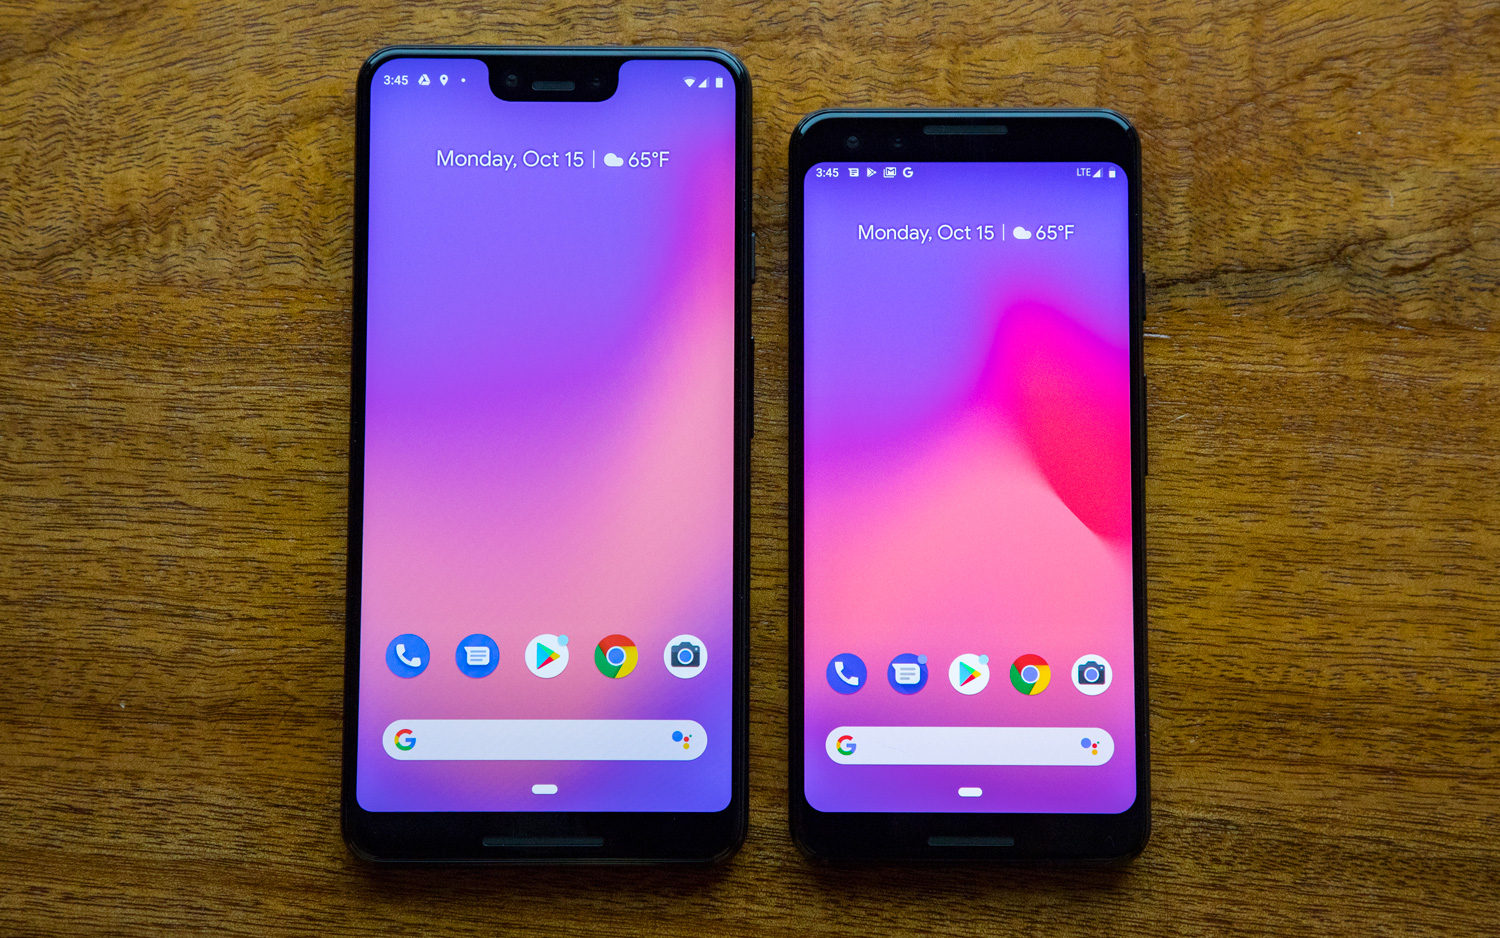 Pixel 3 and Pixel 3 XL Guide: Tips, Tricks and How-Tos - Pixel 3 and